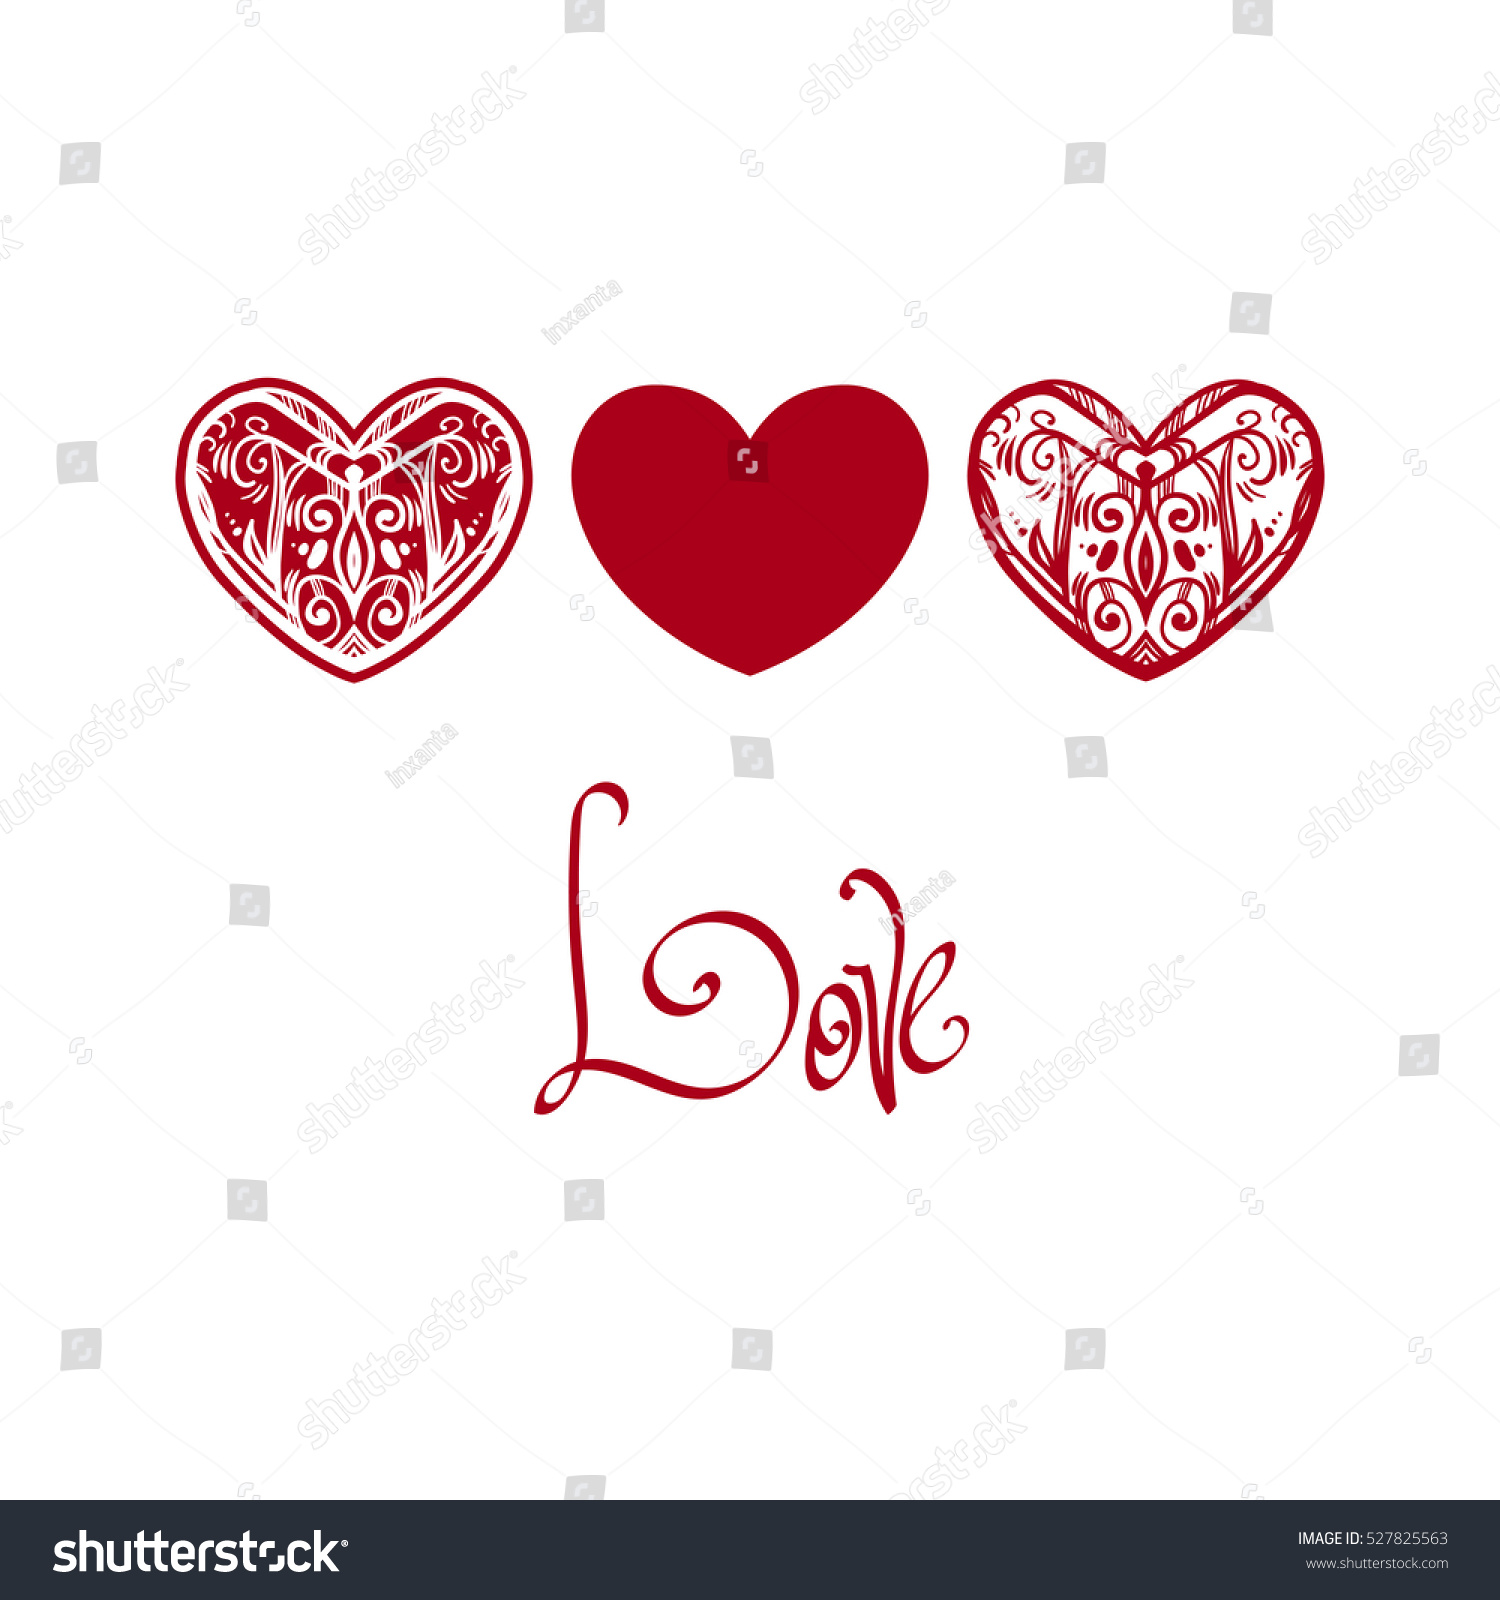 Beautiful Openwork Heart The Elements For Valentines Day Symbols